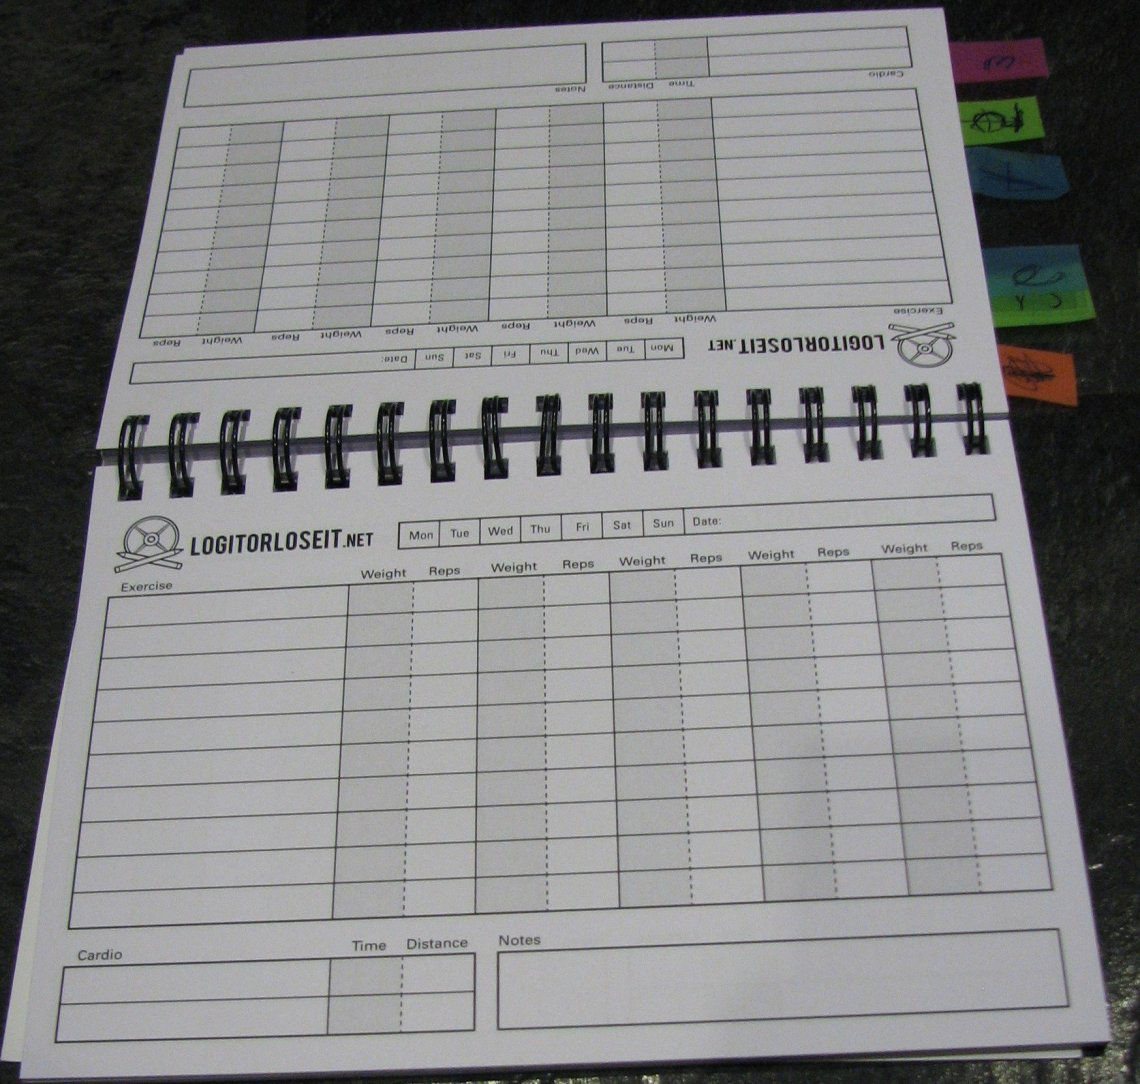 My Log it or Lose it book makes it easier for me to track workouts, sets and reps